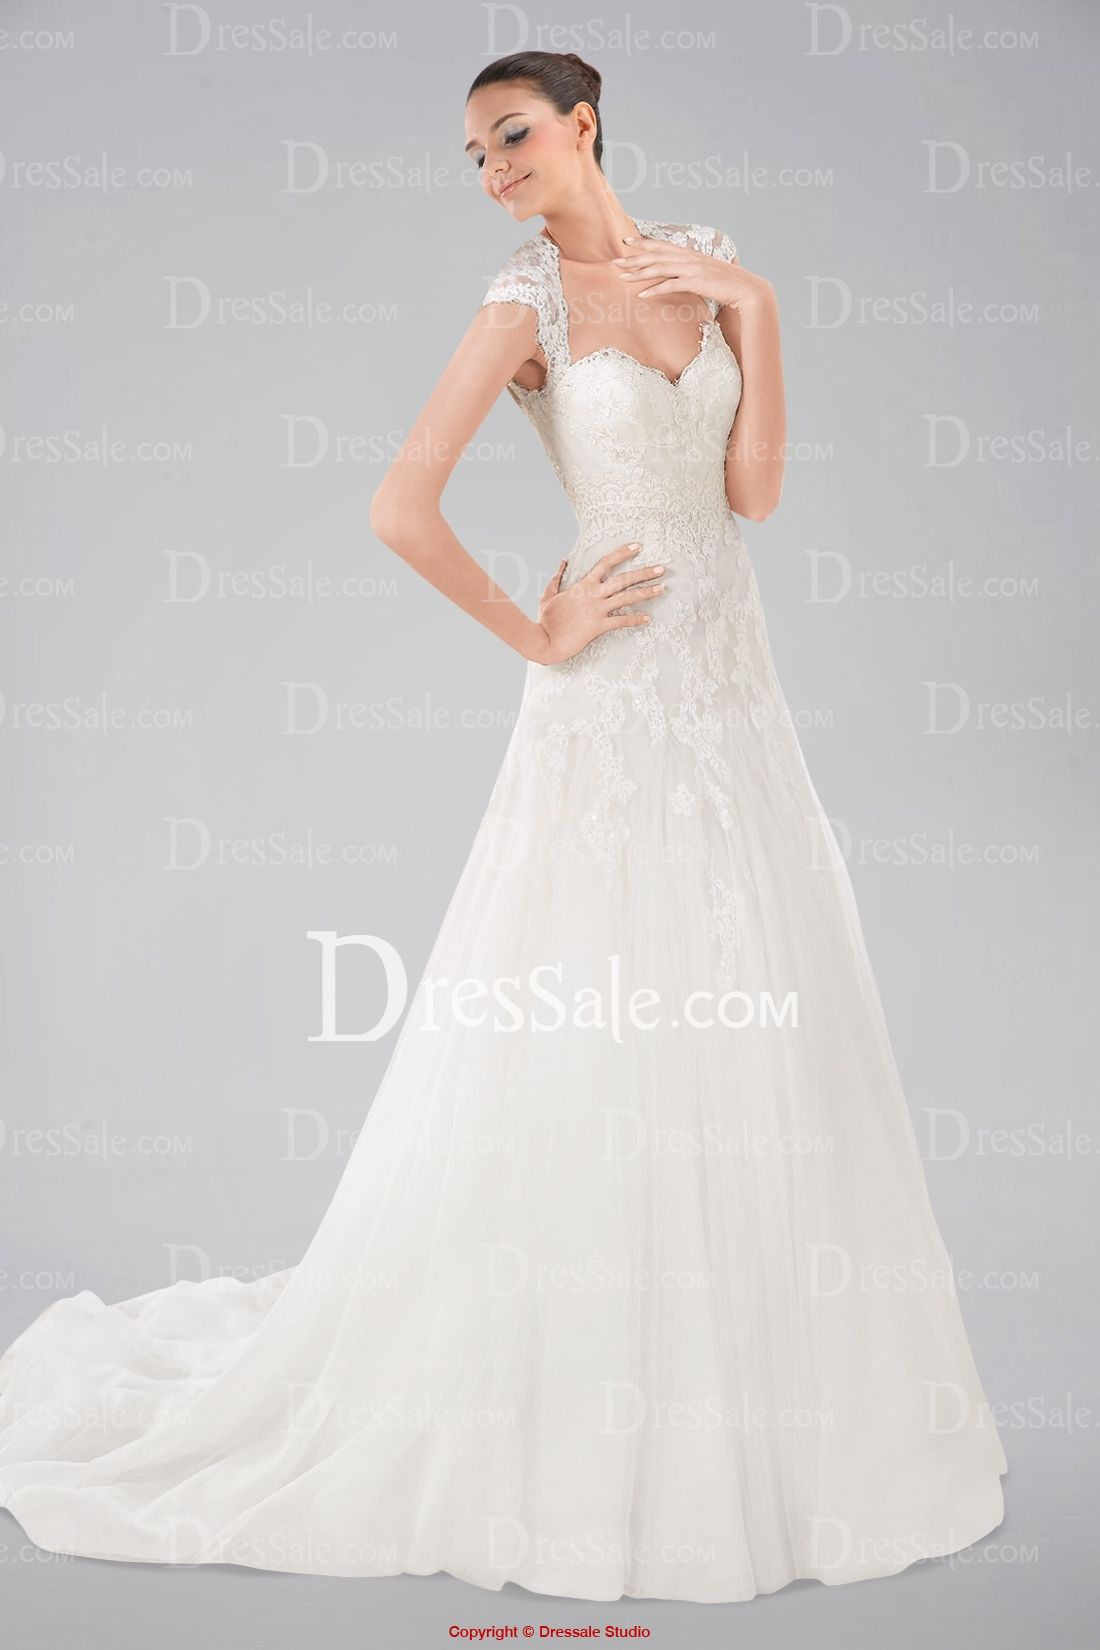 Overwhelming sweetheart neckline wedding dress with appliques and